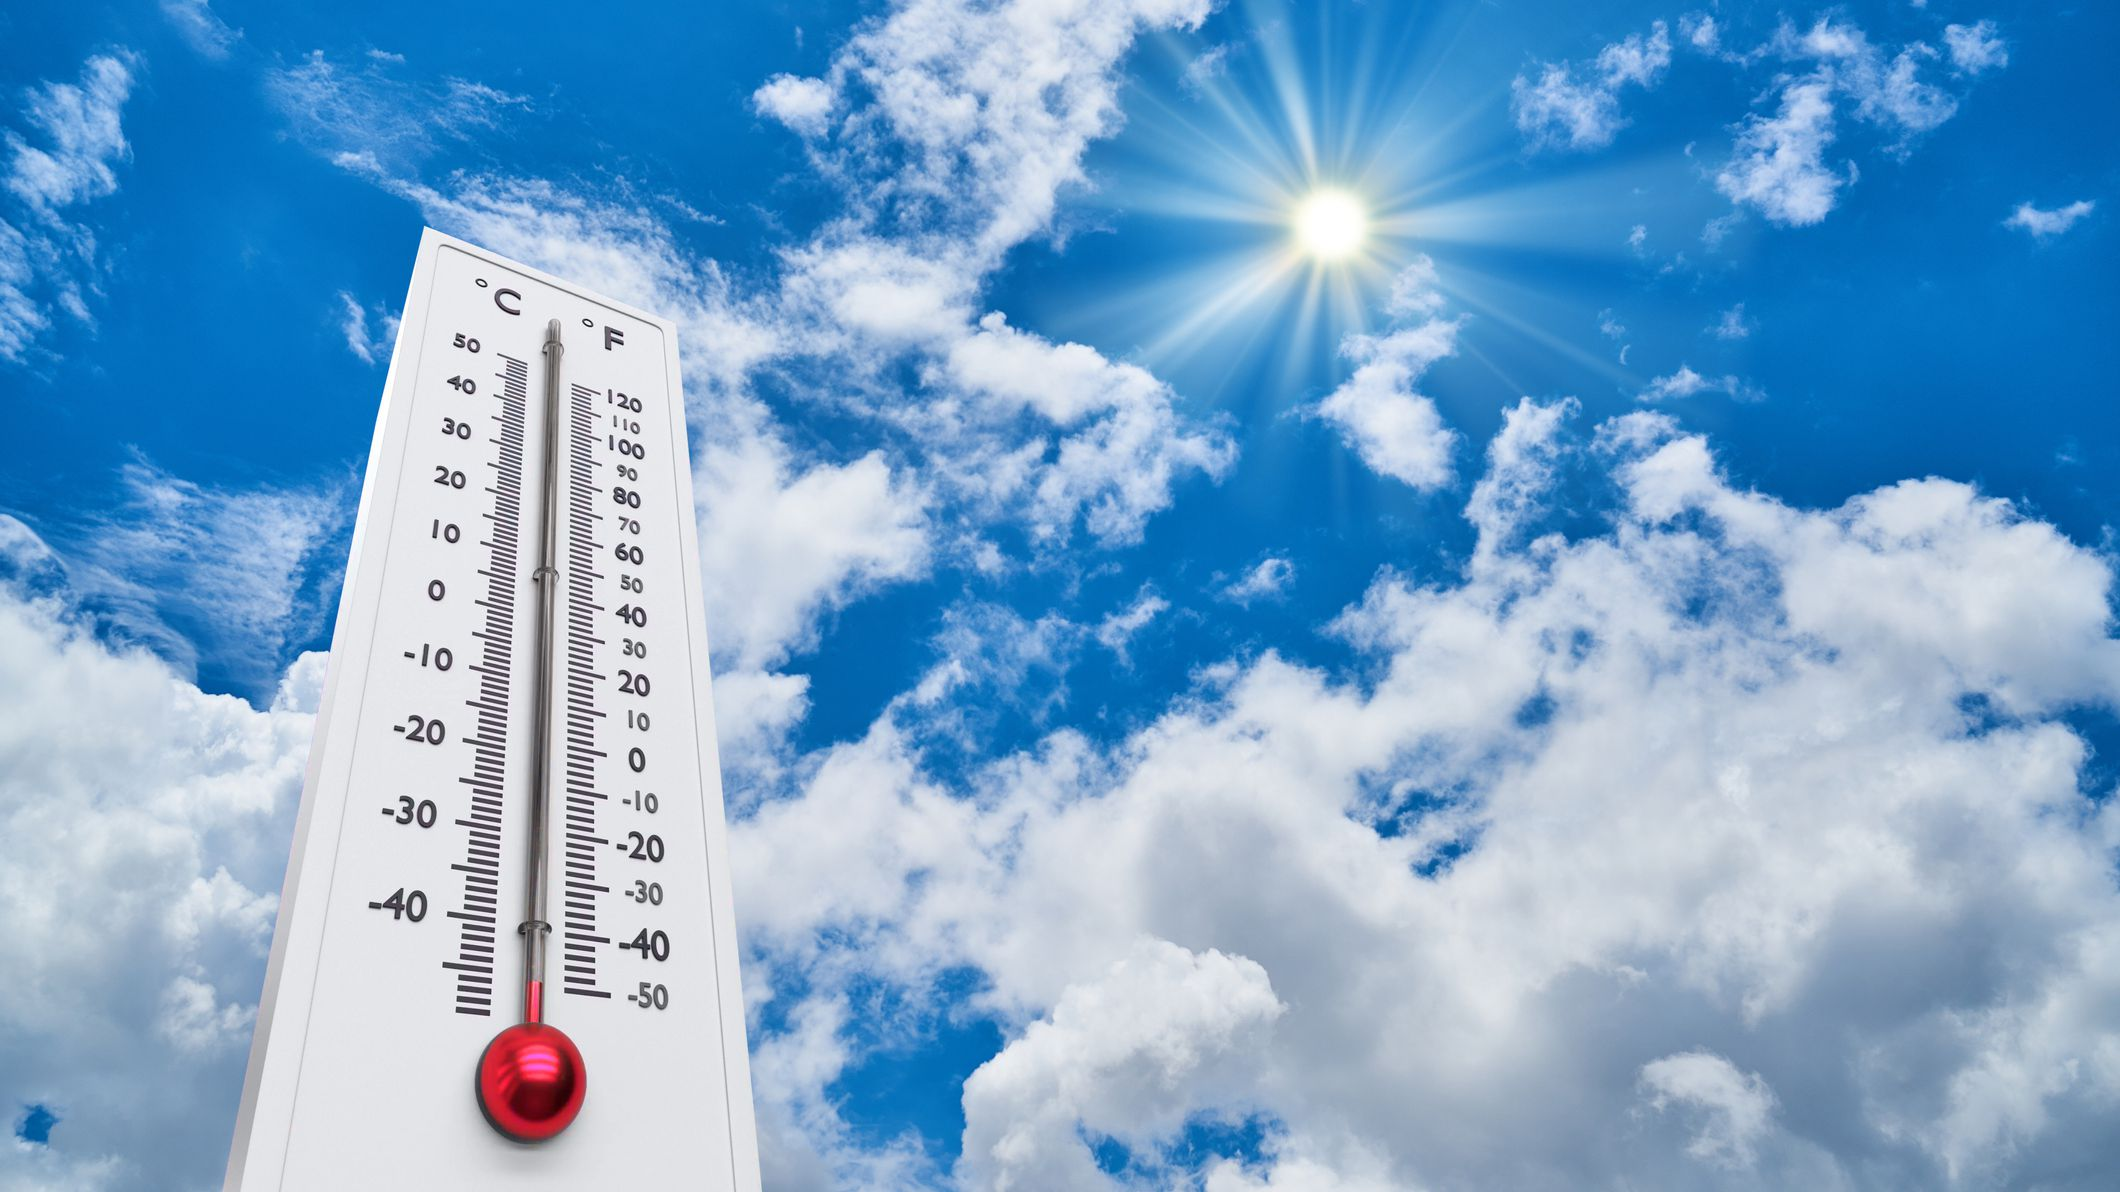 Met Dept Forecasts Temp As High As 35 Degrees in Coming Days